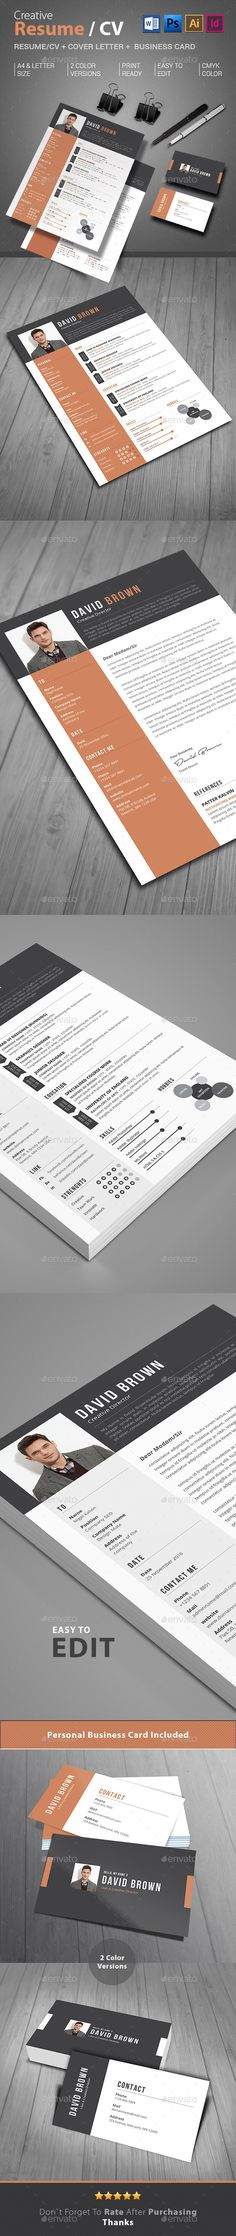 Resume - Resumes Stationery Resume Templates Microsoft Word - resume download in word